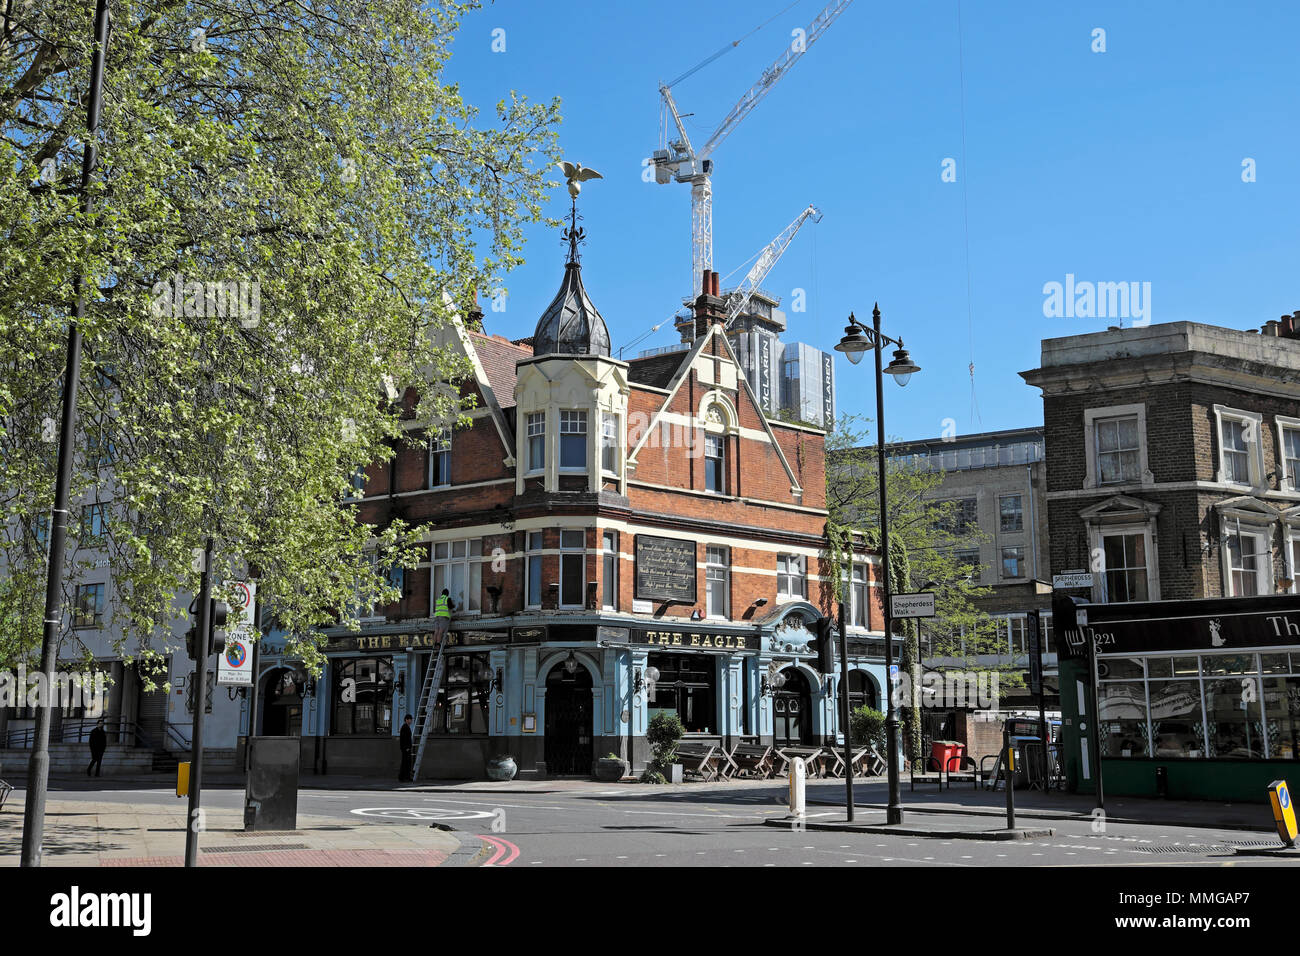 The Eagle pub exterior street view on Shepherdess near City Road in Shoreditch London N1 - Stock Image